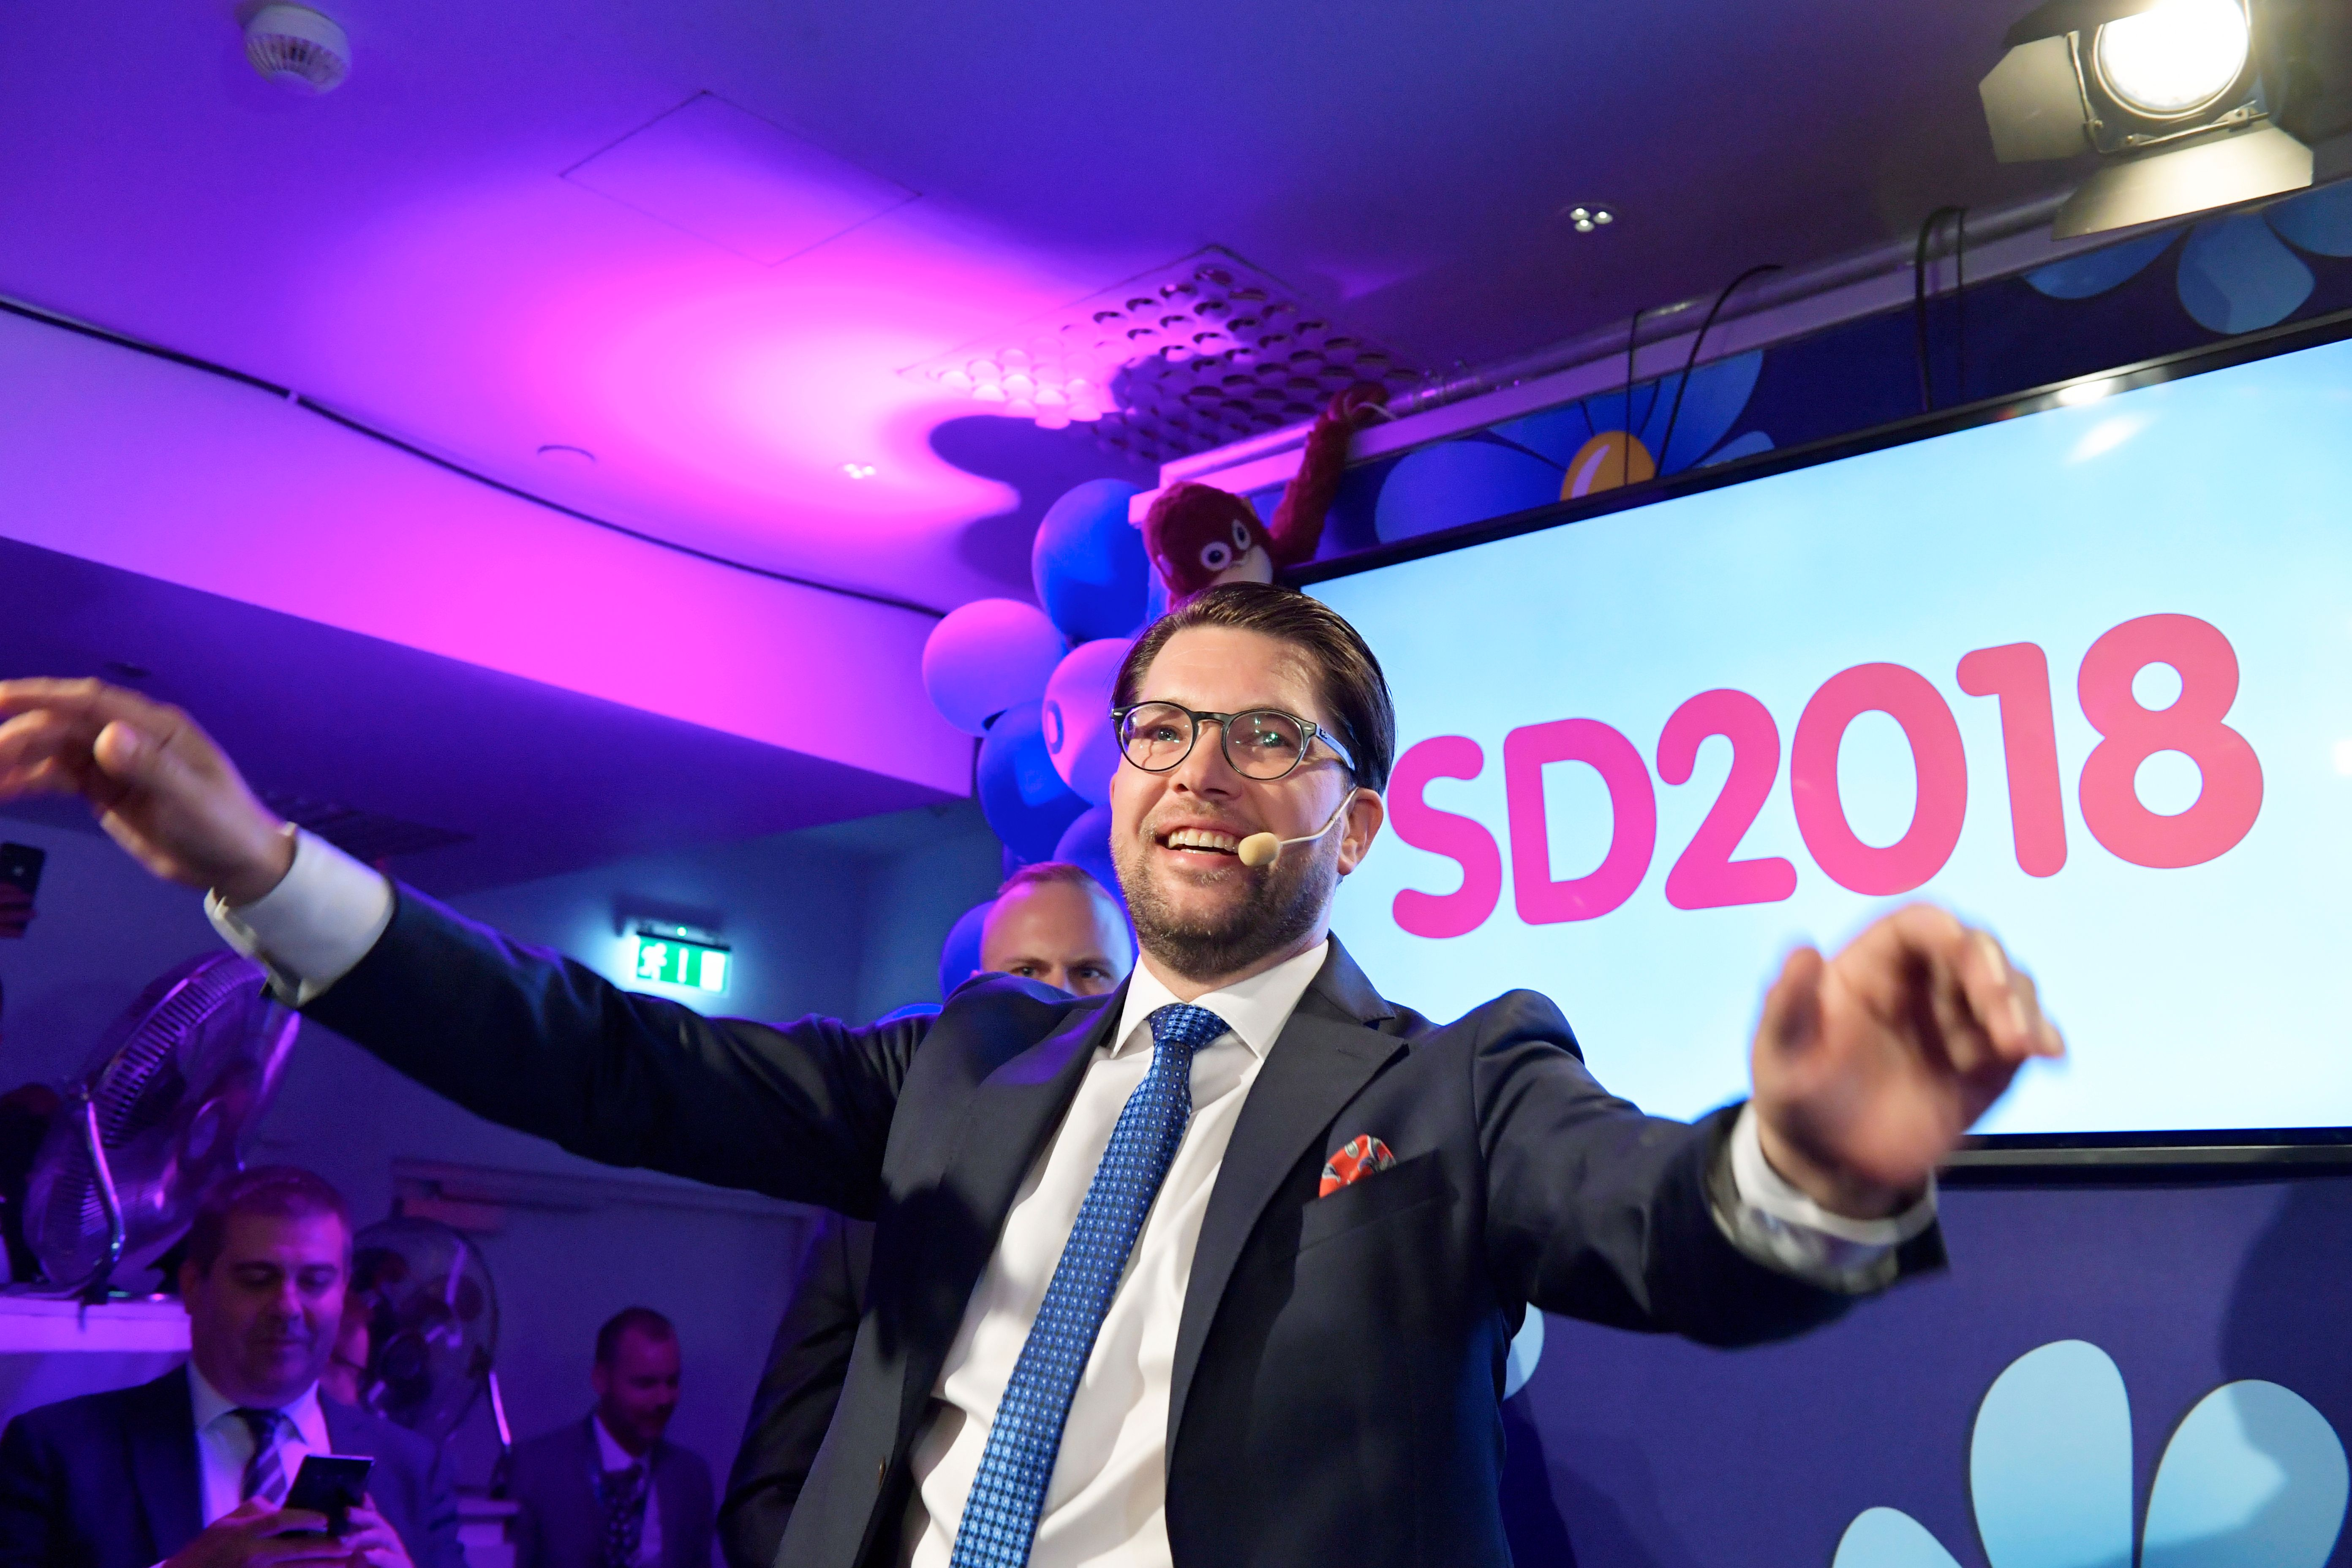 Jimmie Akesson of the Sweden Democrats speaks at the election party at the Kristallen restaurant in central Stockholm on September 9, 2018. - Sweden's Social Democrats are tipped to be the country's biggest party after Sunday's election on September 9, 2018, with the far-right Sweden Democrats trailing in third place, a TV4 exit poll predicted shortly before polling stations closed. (Photo by Anders WIKLUND / TT News Agency / AFP) / Sweden OUT (Photo credit should read ANDERS WIKLUND/AFP/Getty Images)